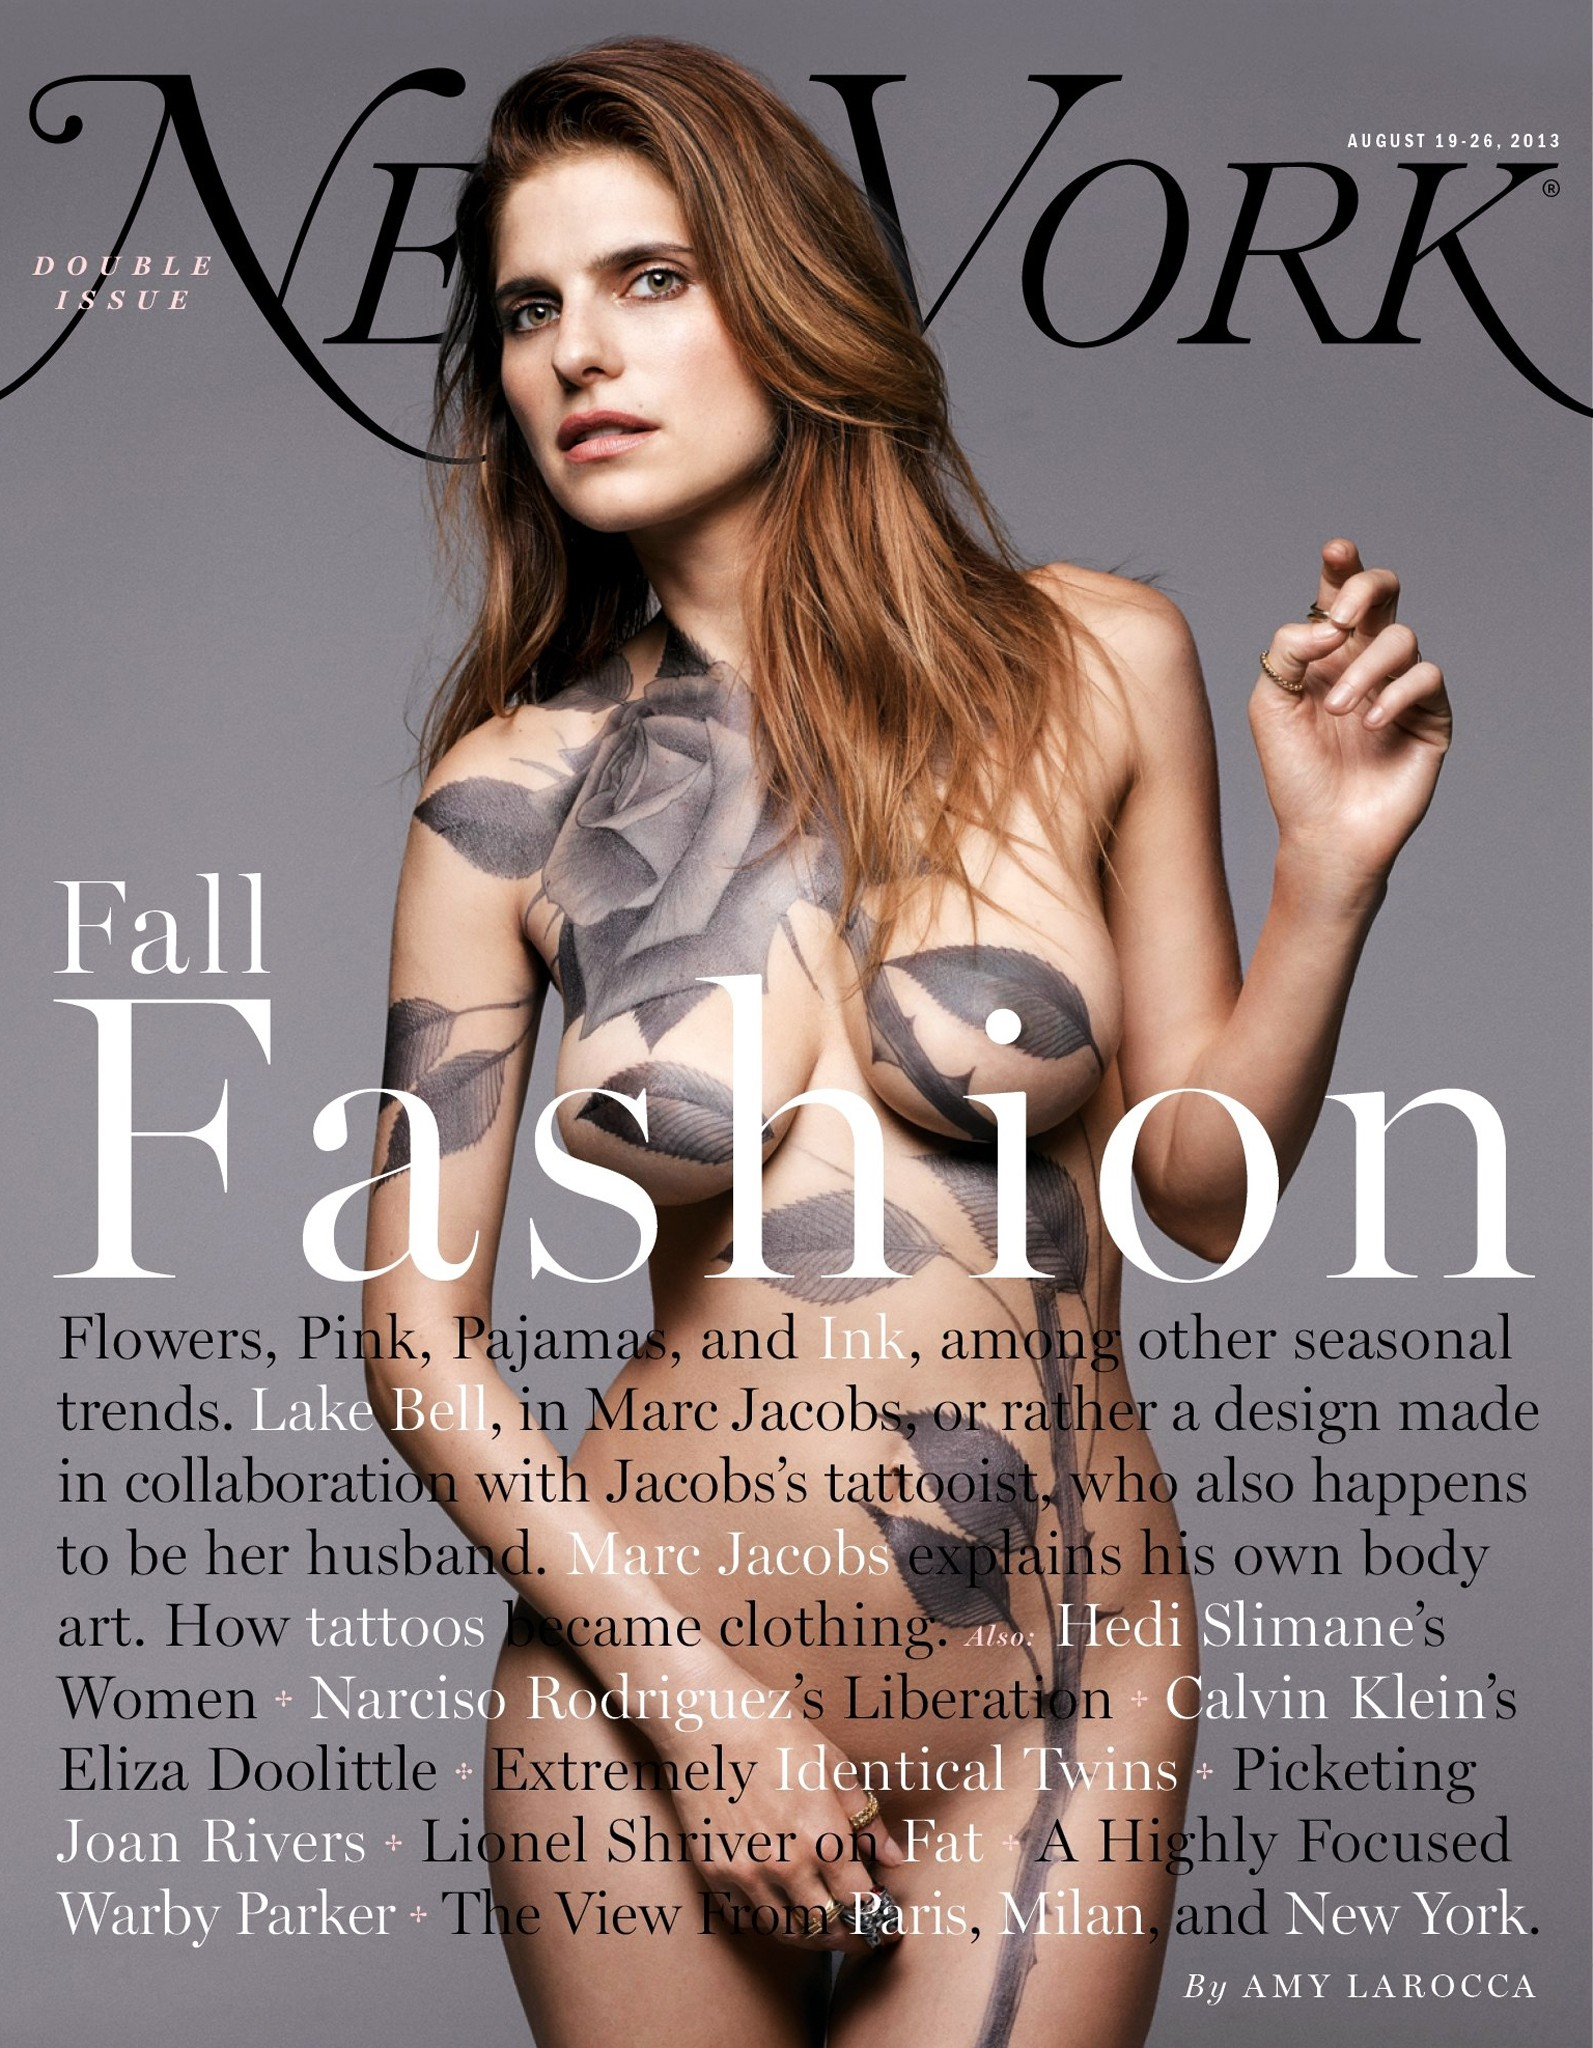 Lake sino - New York Magazine Cover - August 2013